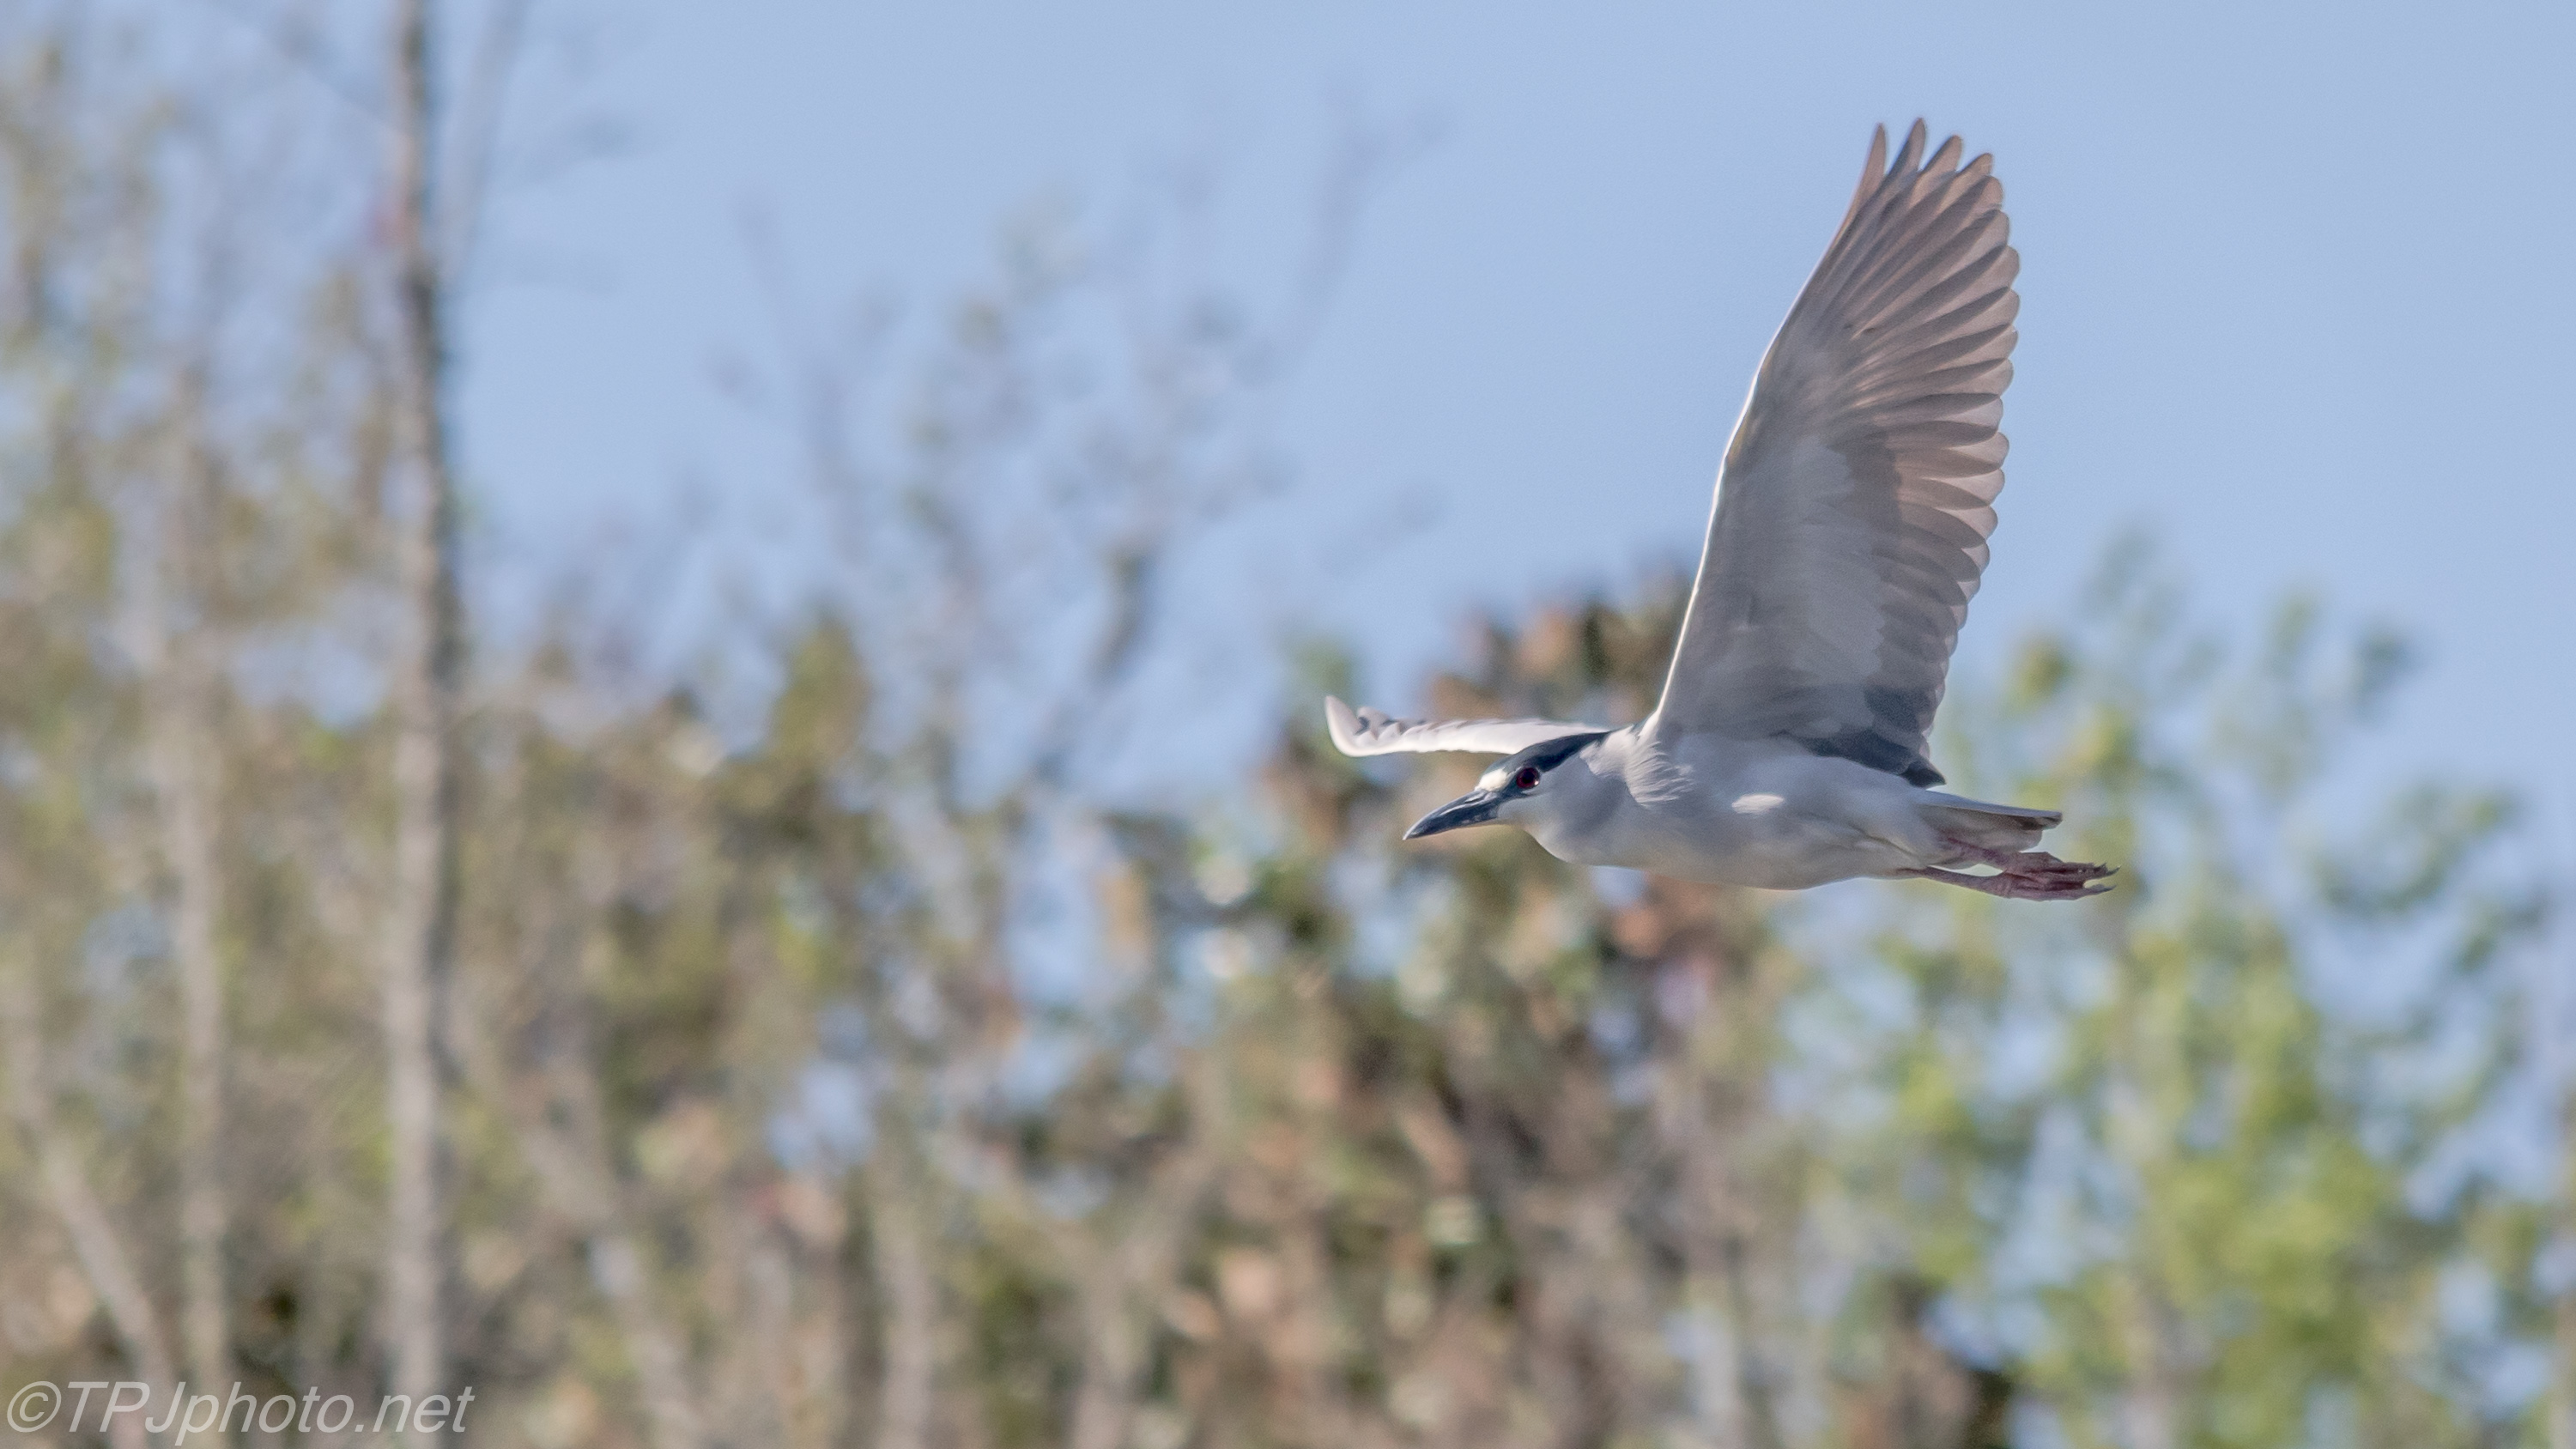 Night heron in flight - photo#49